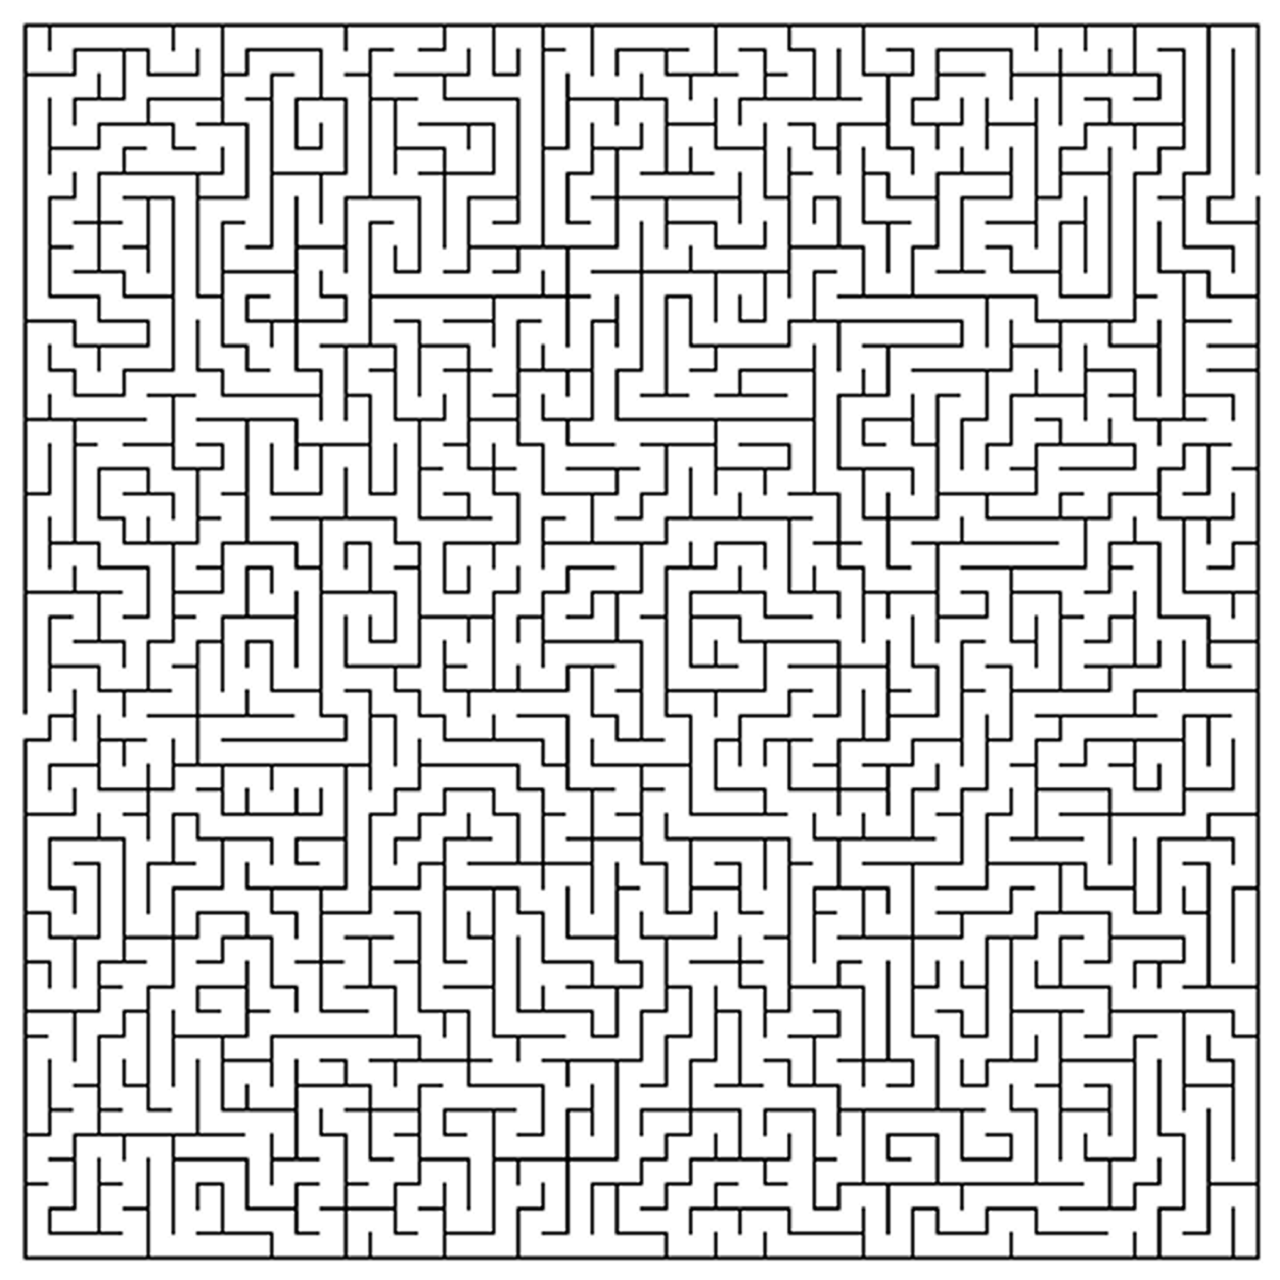 Pin By Barb Polenski On Mazes Printable Mazes Hard Mazes Maze